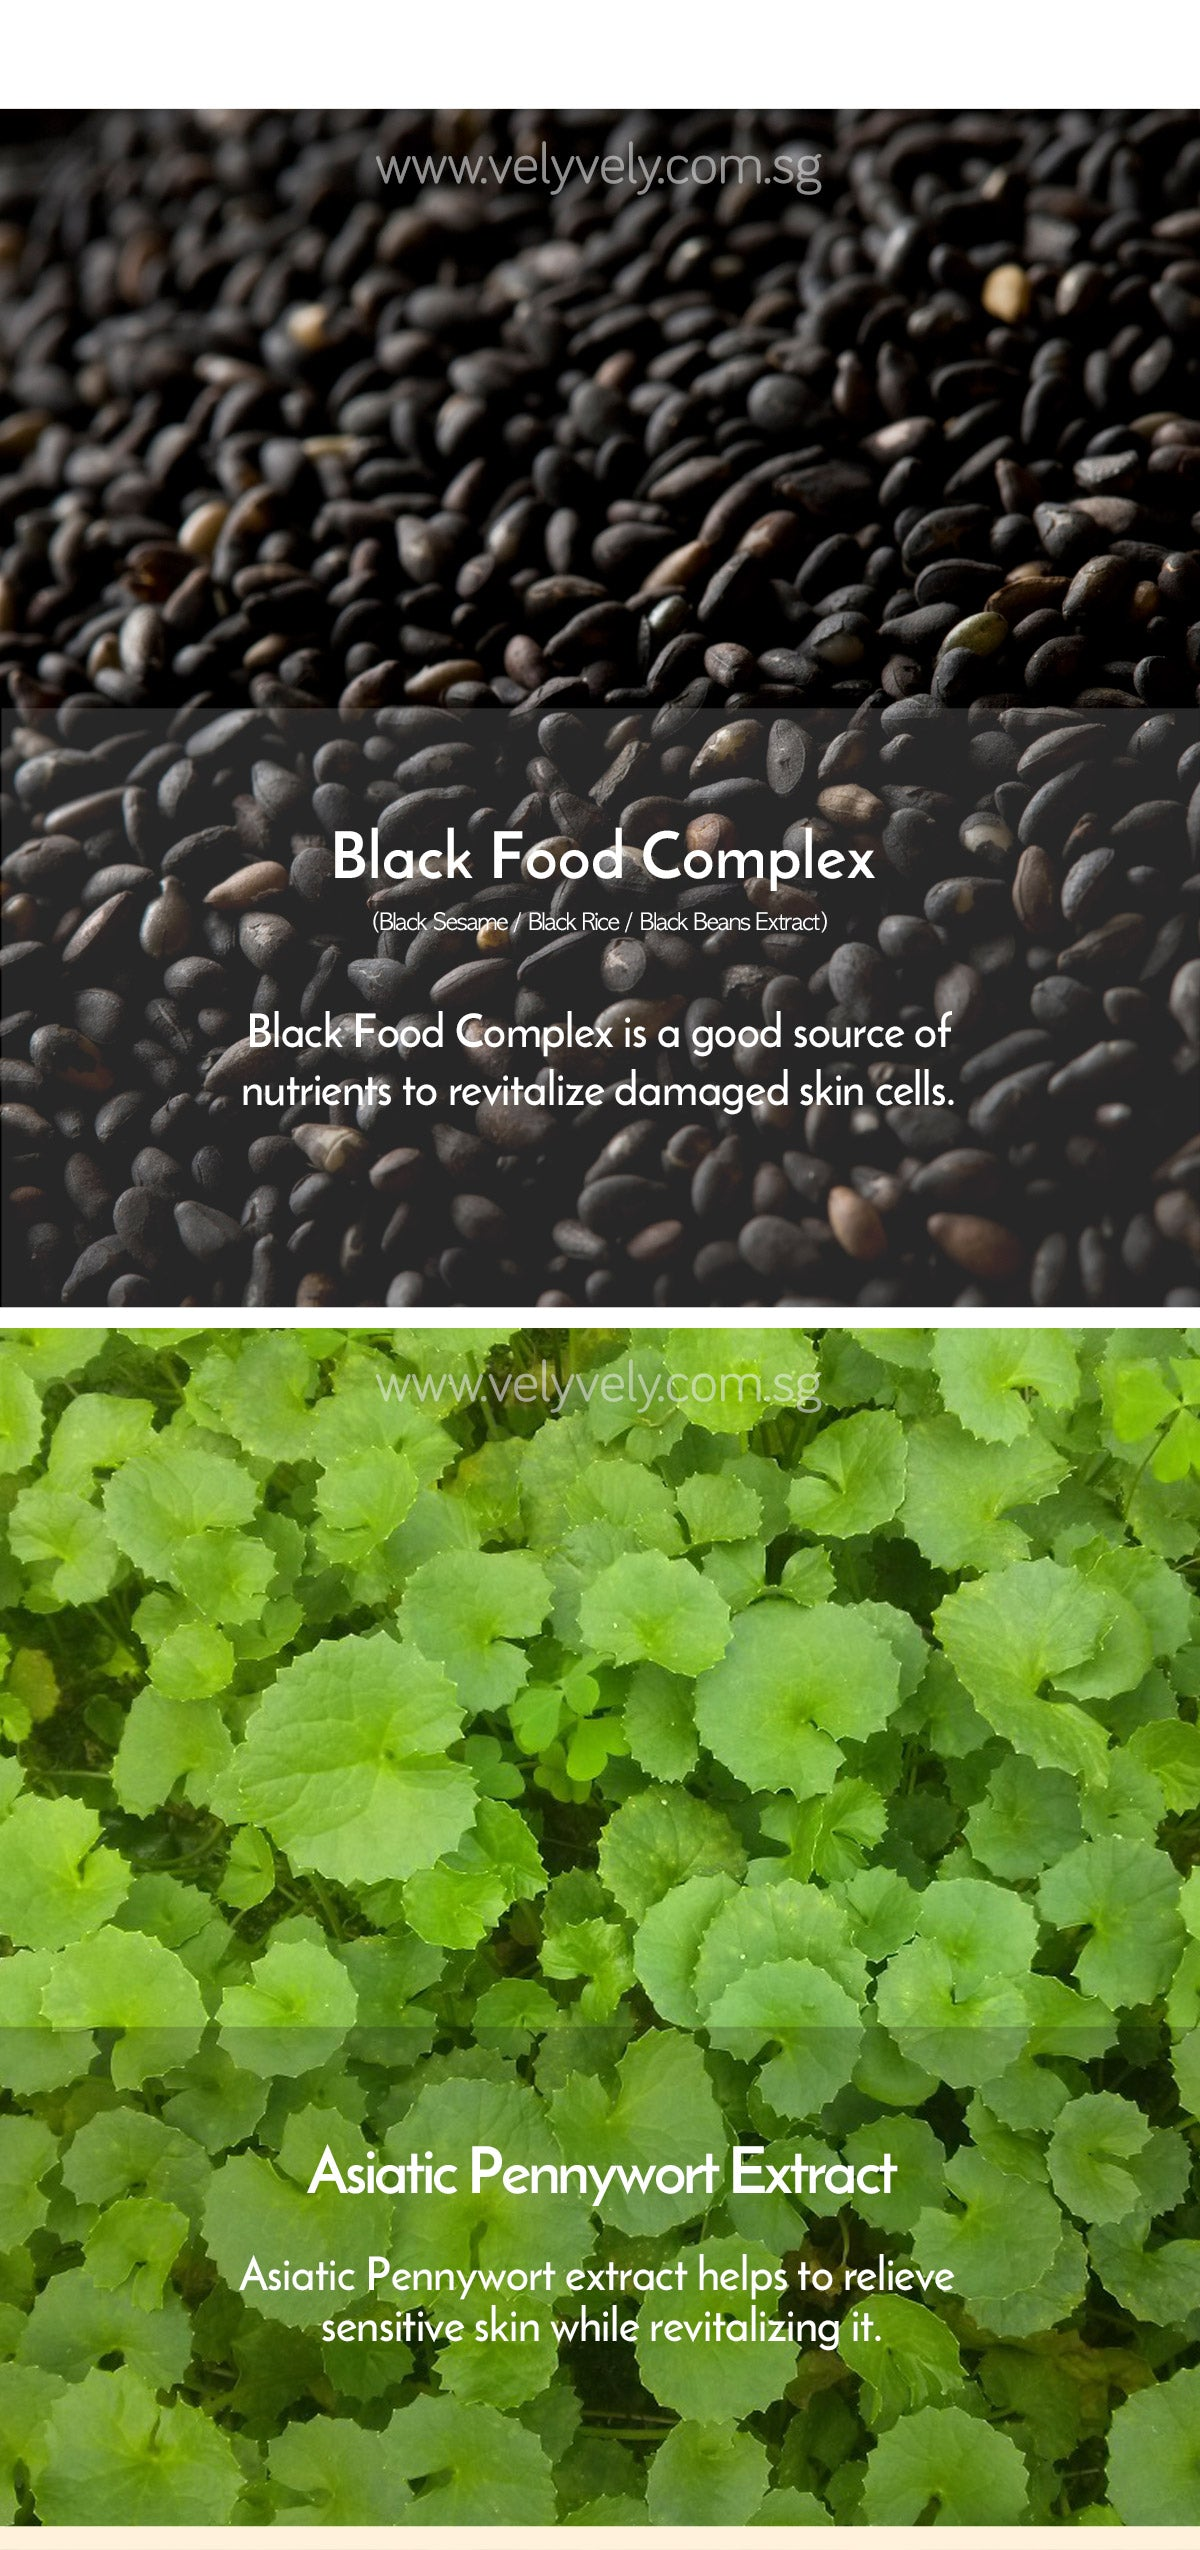 Vely Vely Black Sesame Clarifying Mask - Ingredients (Blackfood complex/Black Rice/Black Beans & Asian Pennywort Extract)